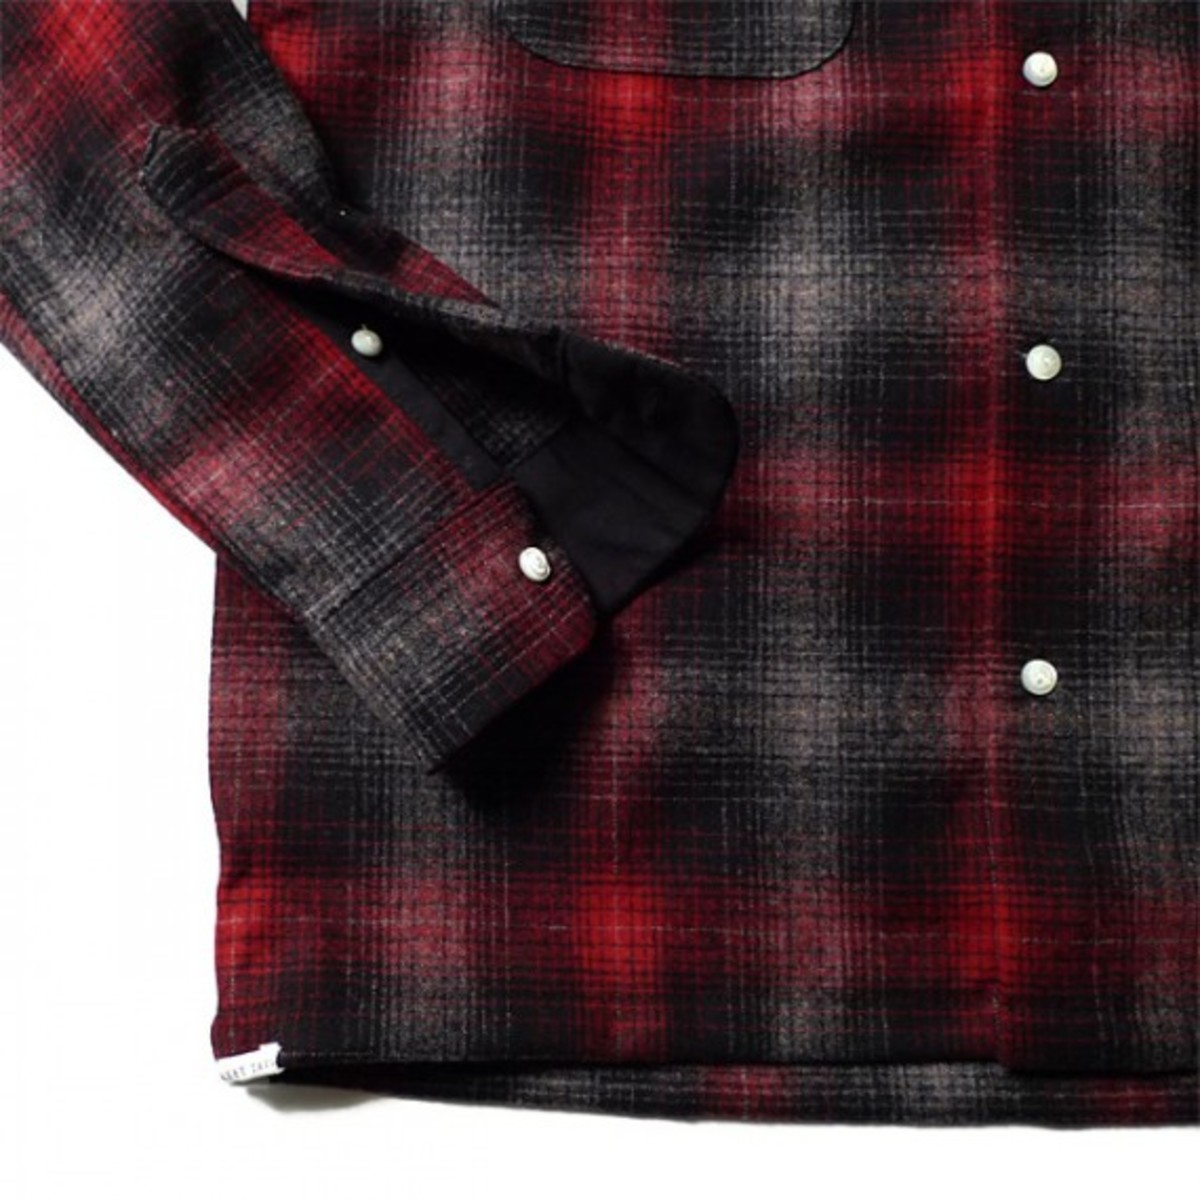 deluxe-pendleton-wool-check-shirt-04